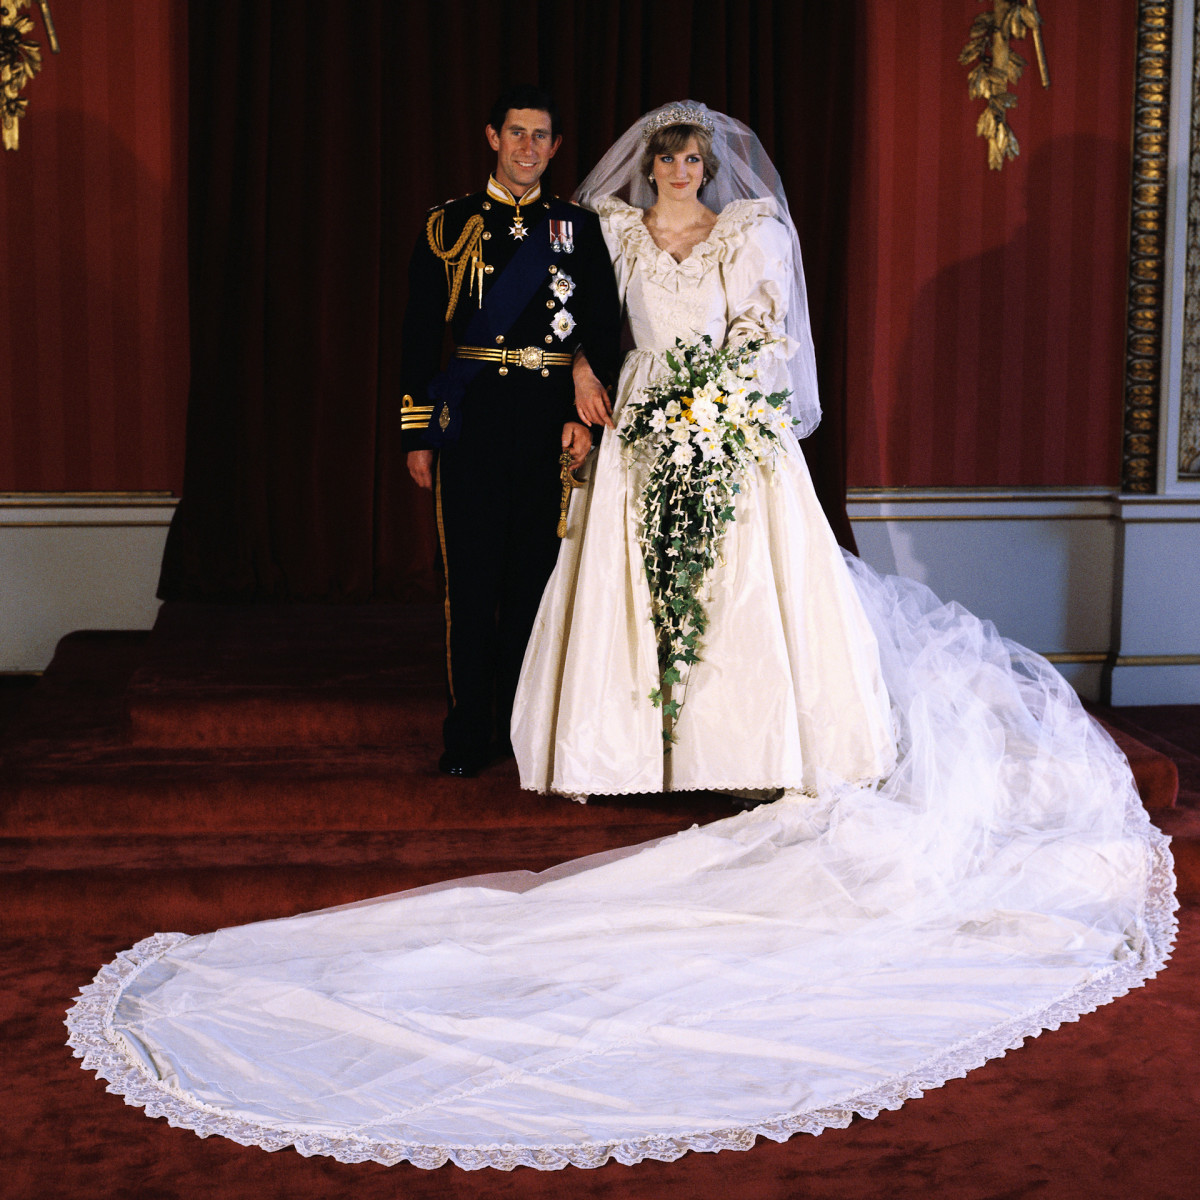 Diana, Princess of Wales and Prince Charles pose for the official photograph by Lord Lichfield in Buckingham Palace at their wedding.